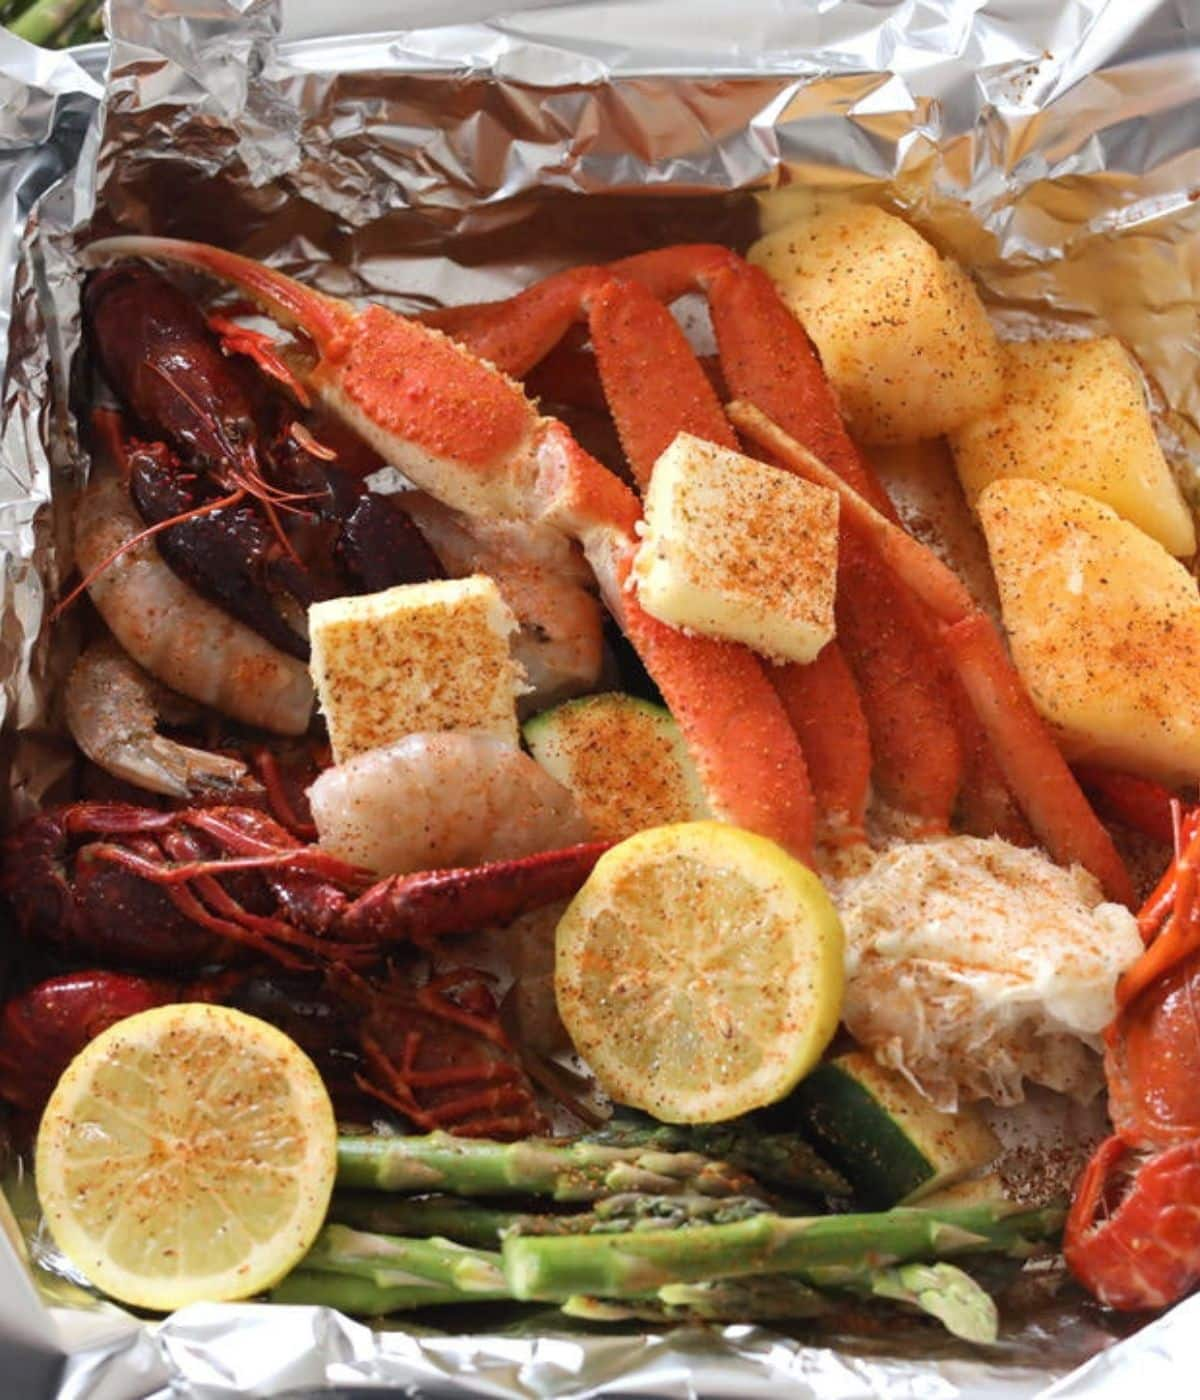 cajun lemon butter with crab legs and asparagus